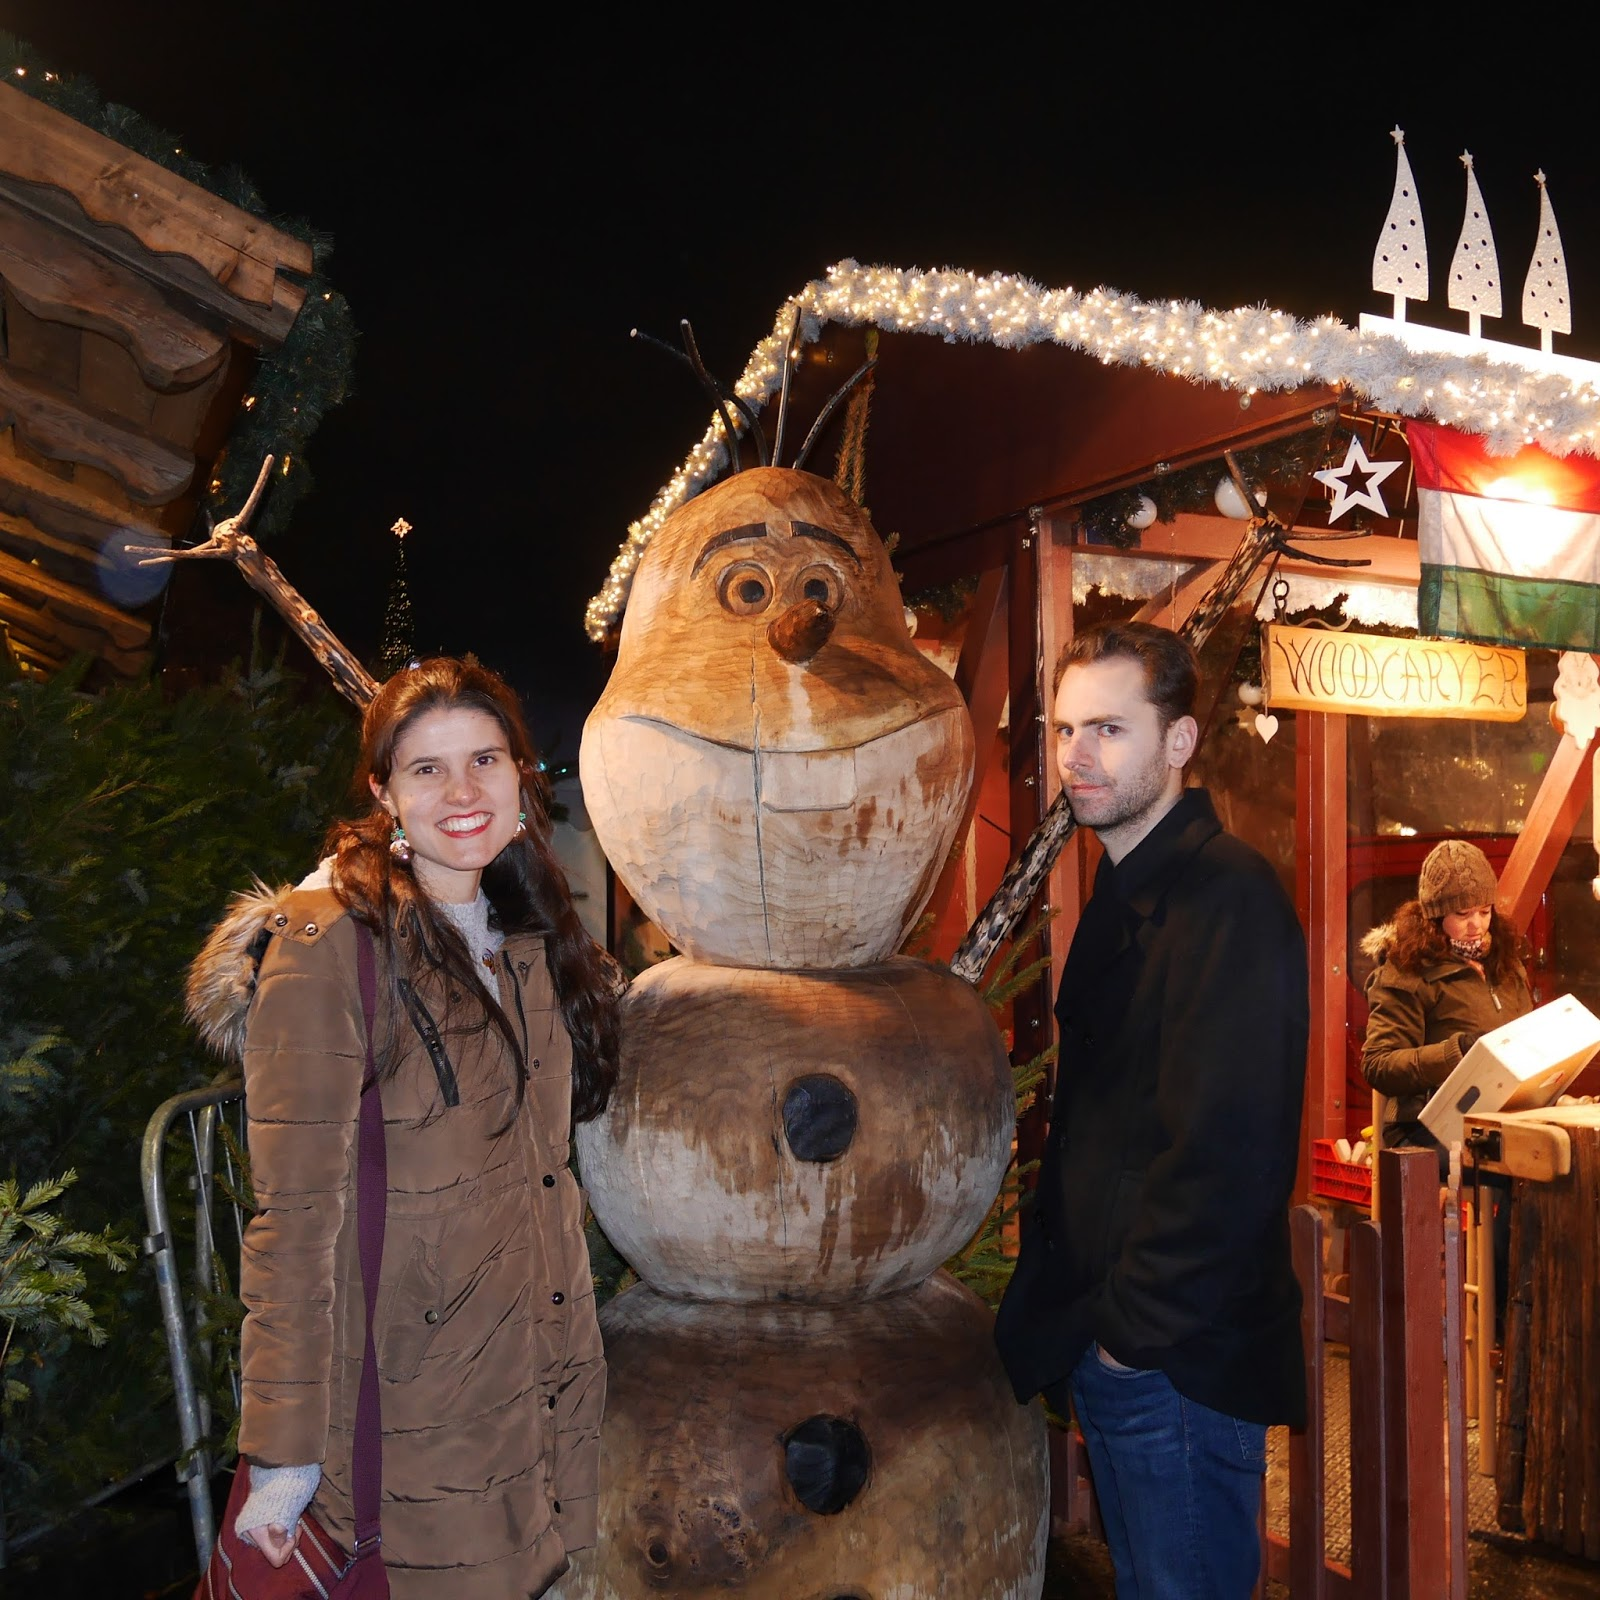 Stuart and I having a photo with Olaf at Winter Wonderland